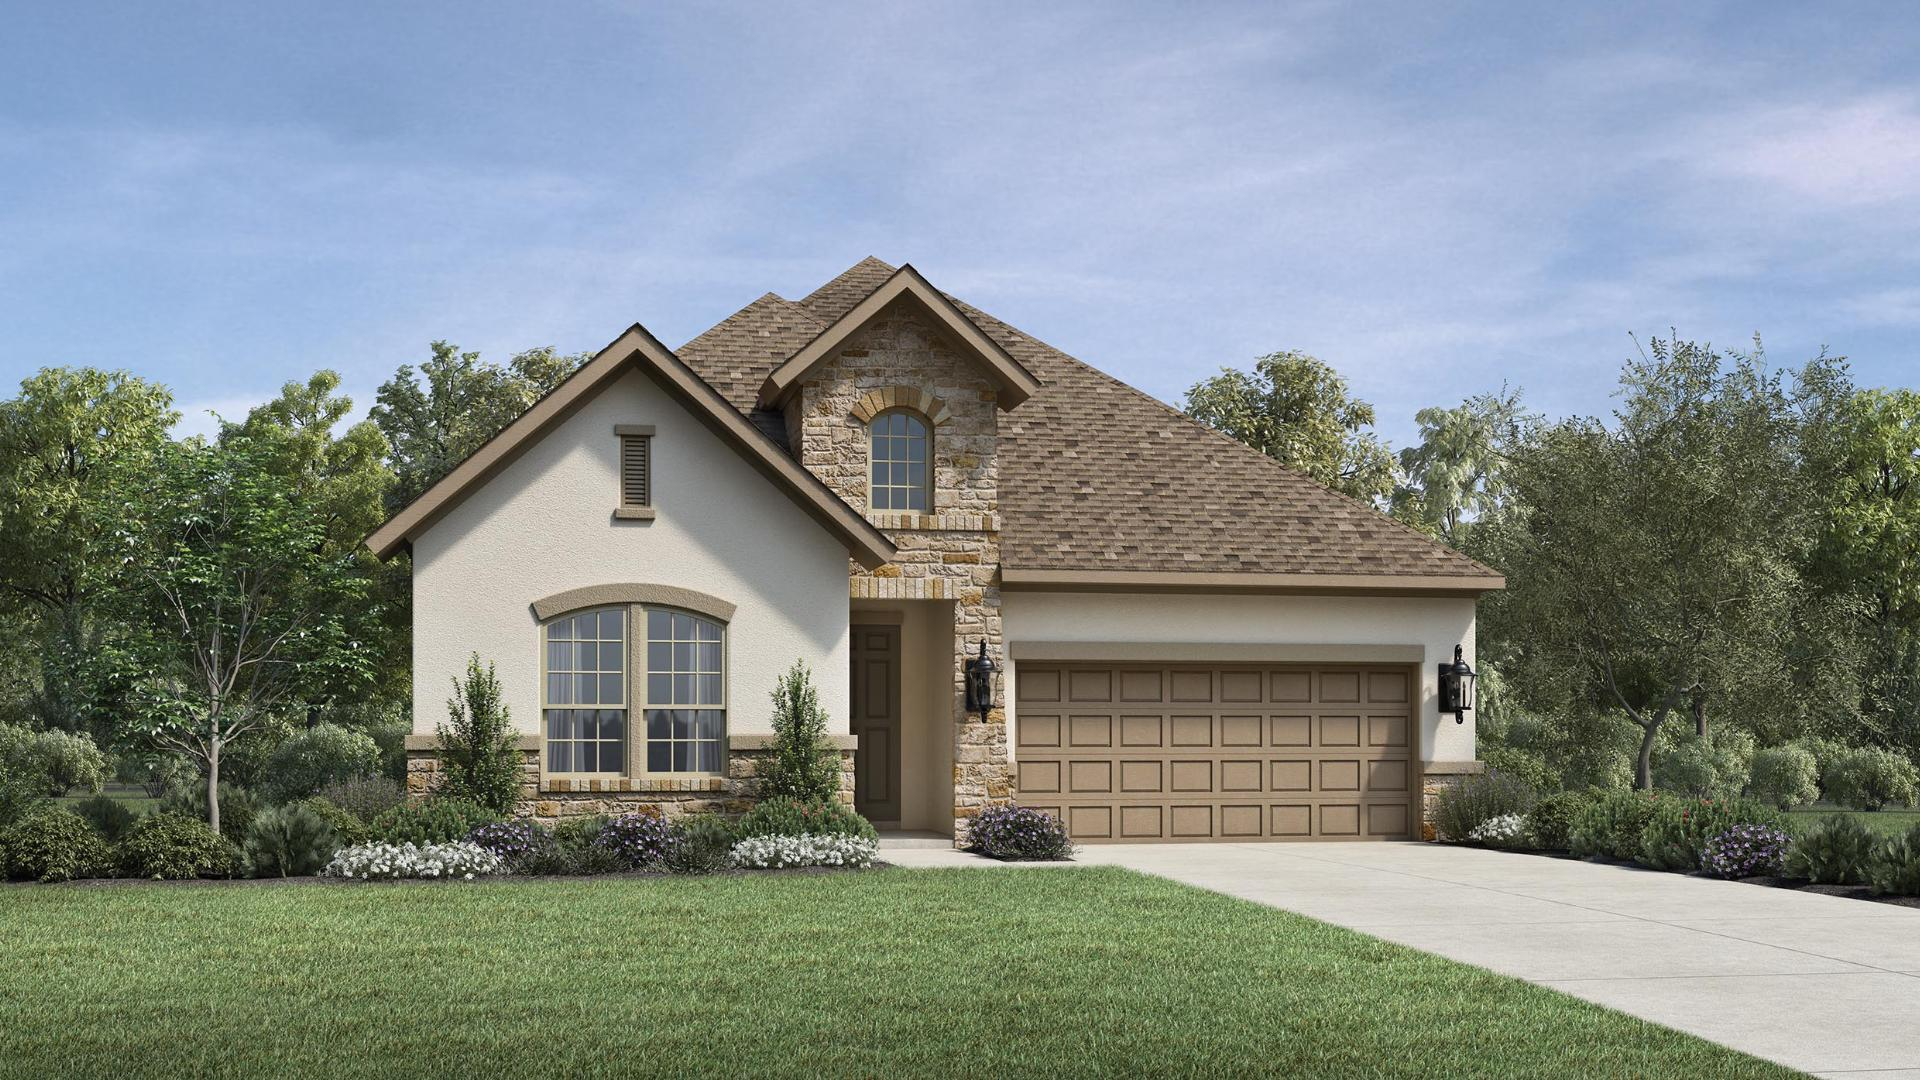 toll brothers, Toll Brothers, Lakes at Creekside